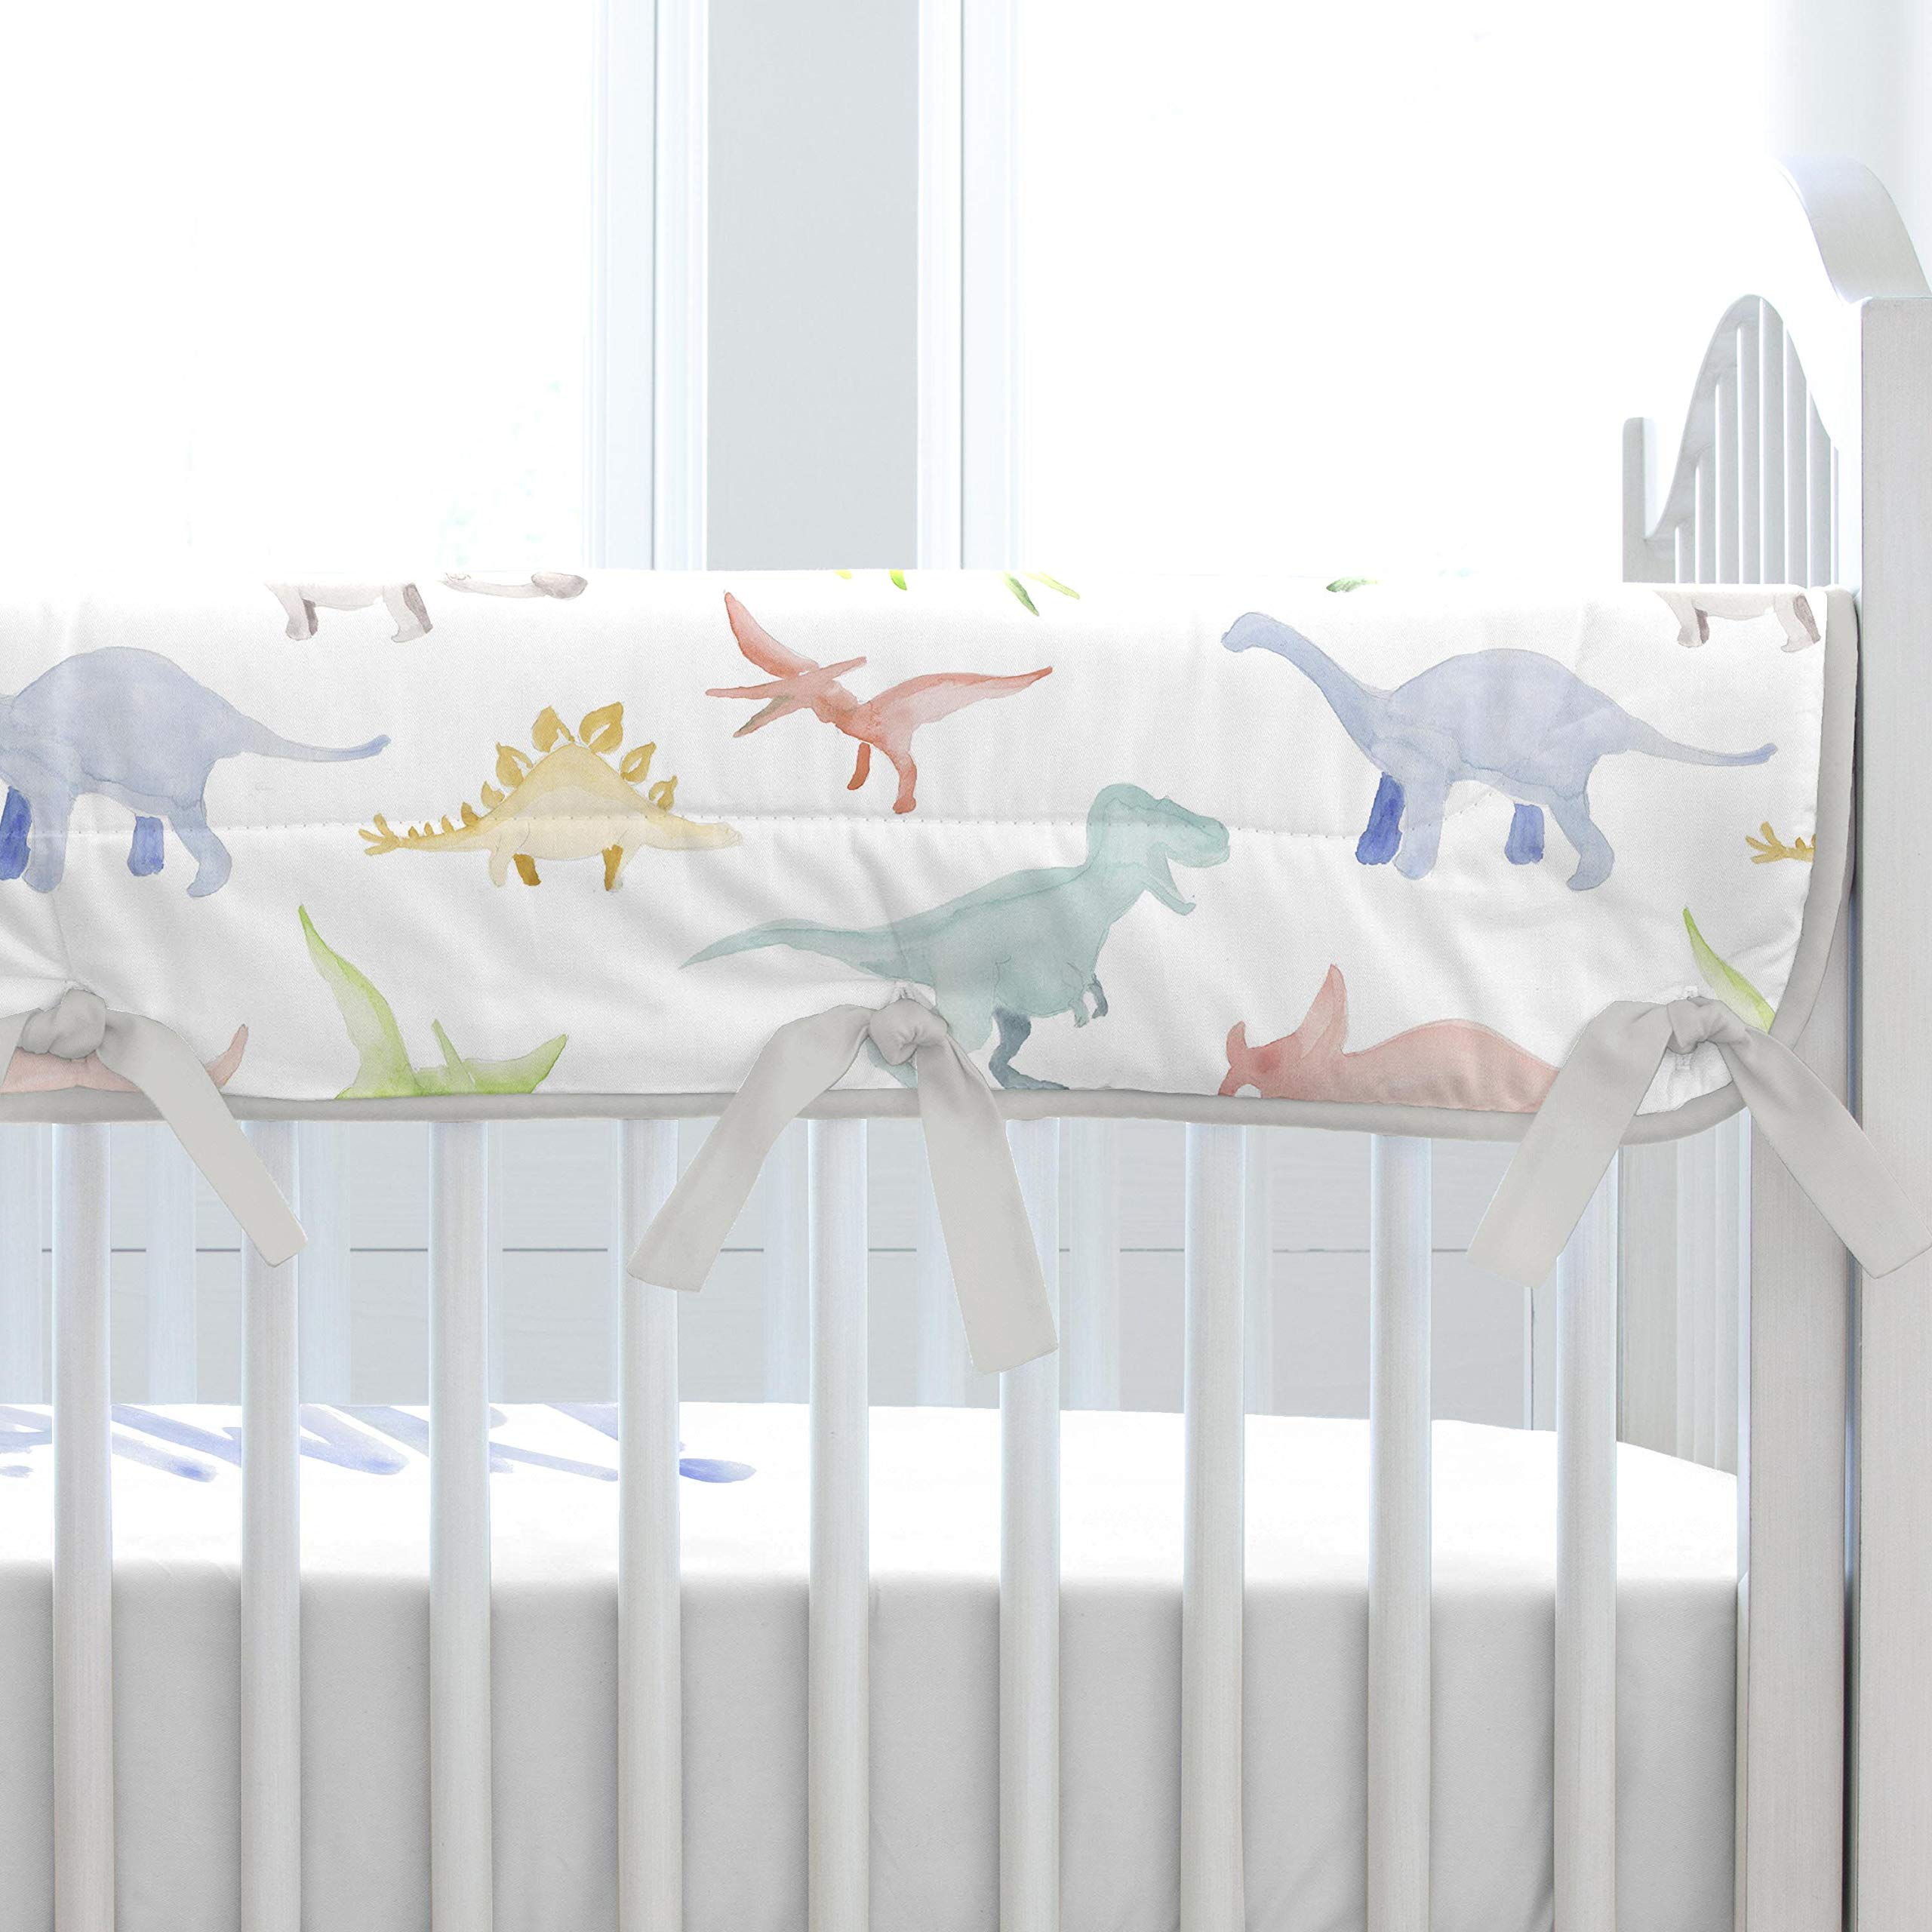 Carousel Designs Watercolor Dinosaurs Crib Rail Cover by Carousel Designs